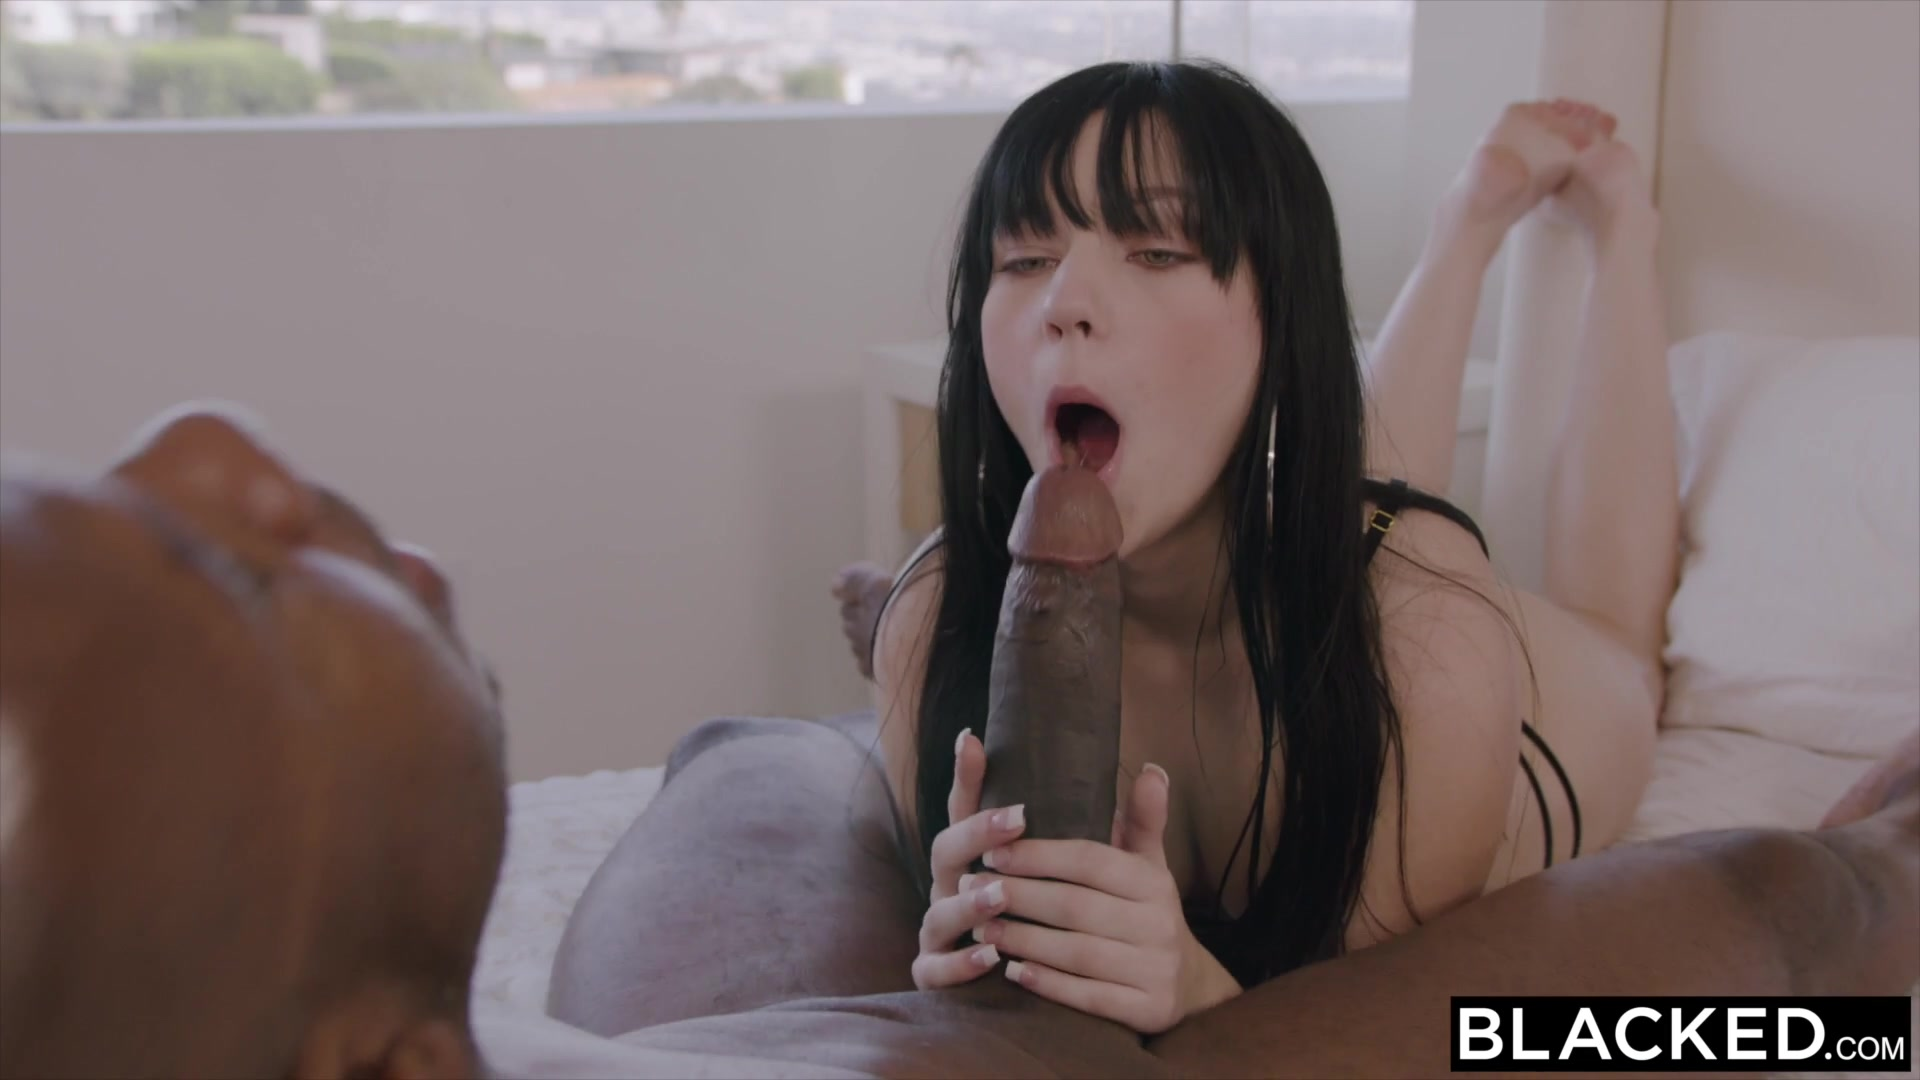 BLACKED College Student Fucks Mandingos GIANT BBC Extreme JAV bound for free use blowjobs Subtitles